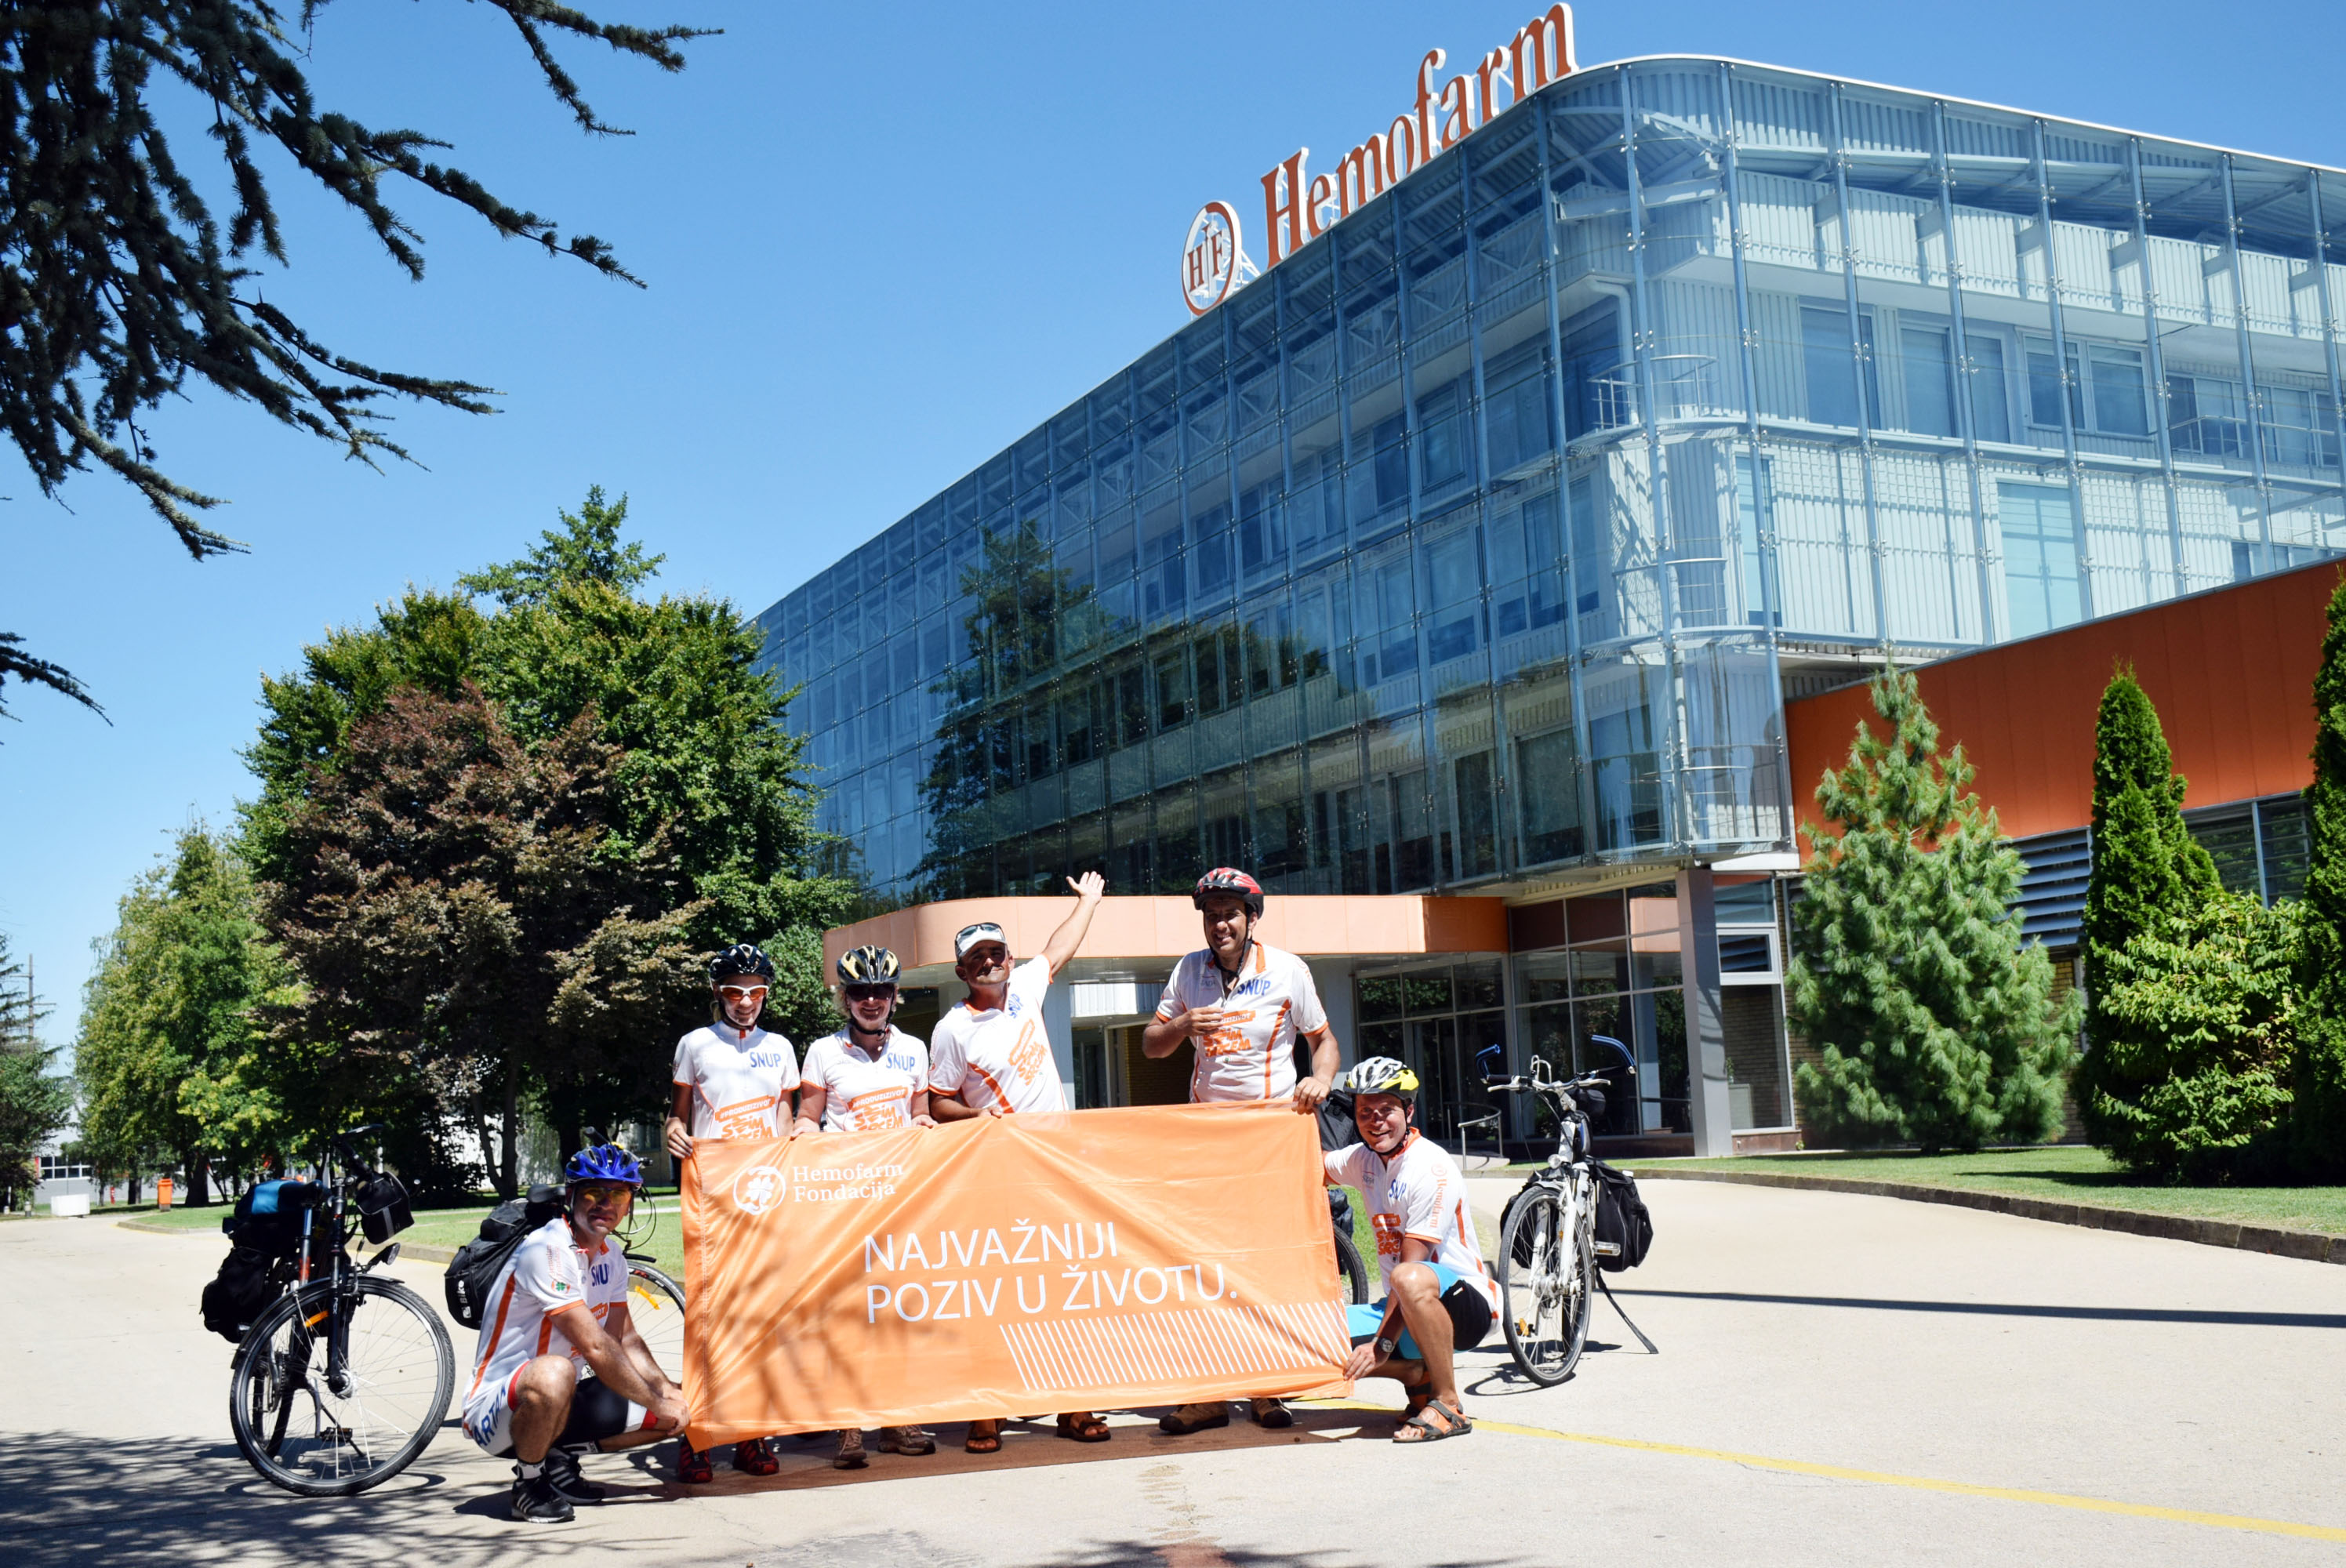 Hemofarm's Cyclists Arrived in Vršac from Germany after Two Weeks of Cycling